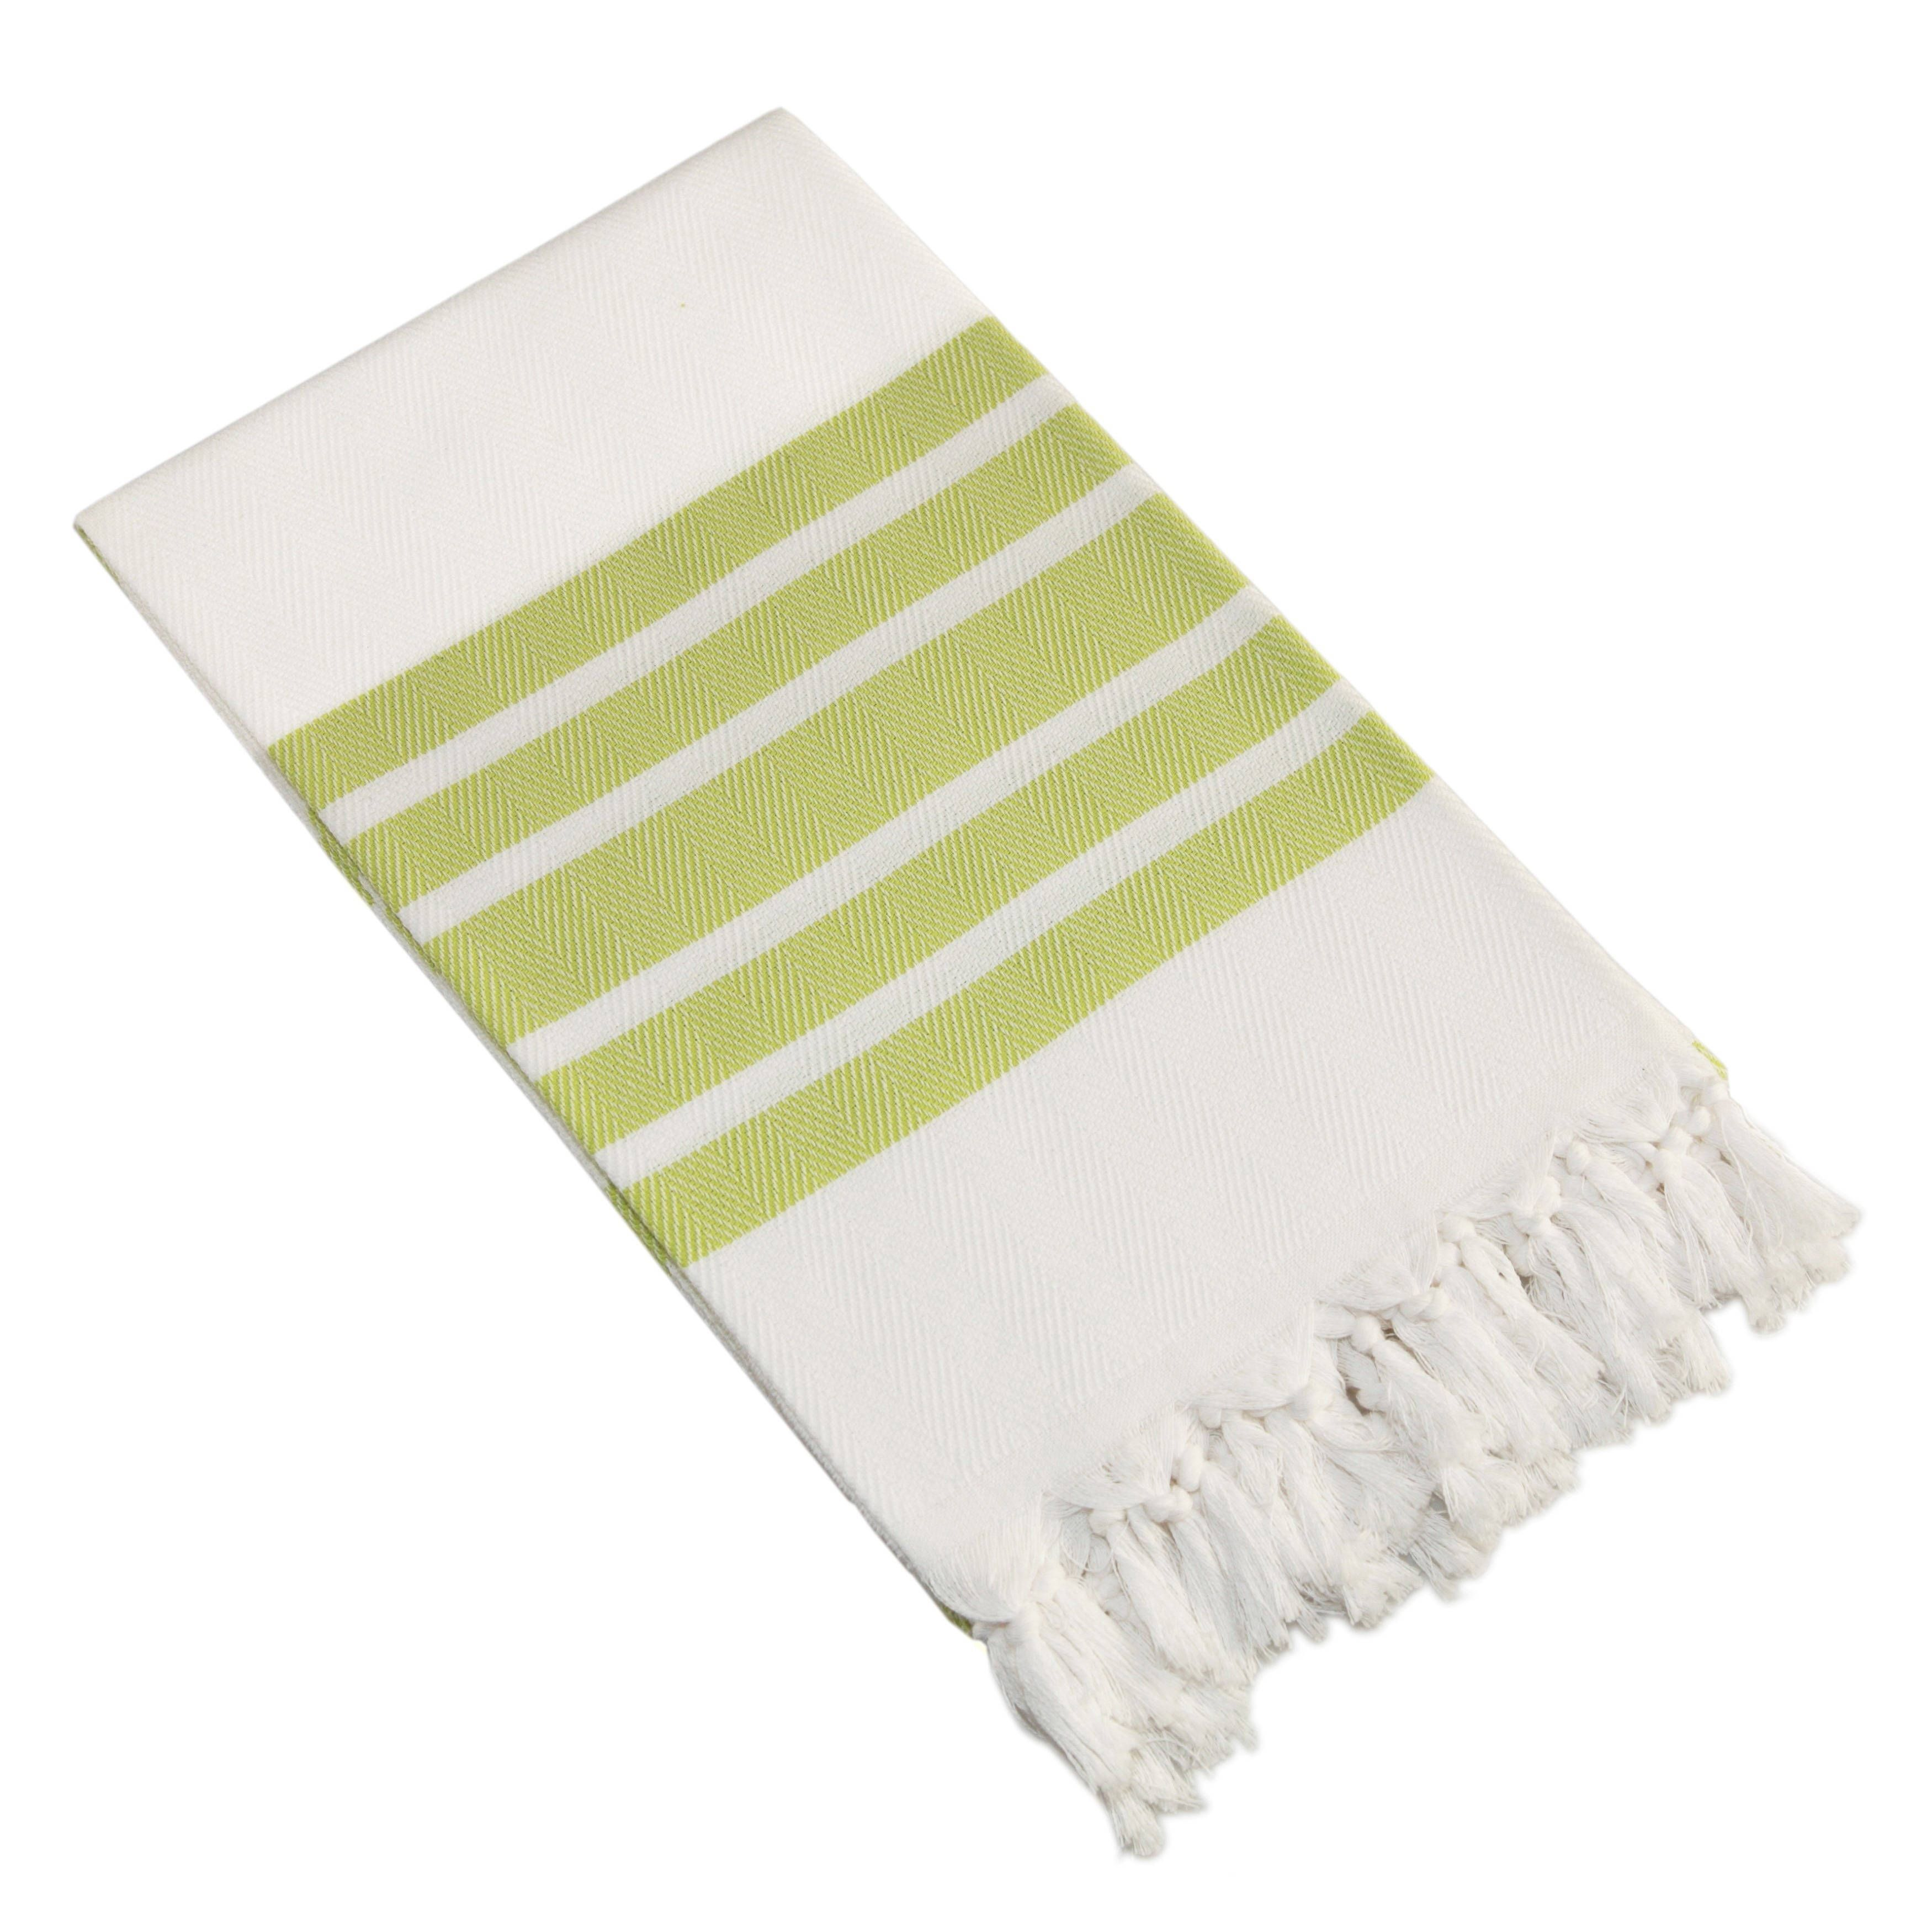 Authentic Pestemal Fouta Bold Stripe Turkish Cotton Bath Beach